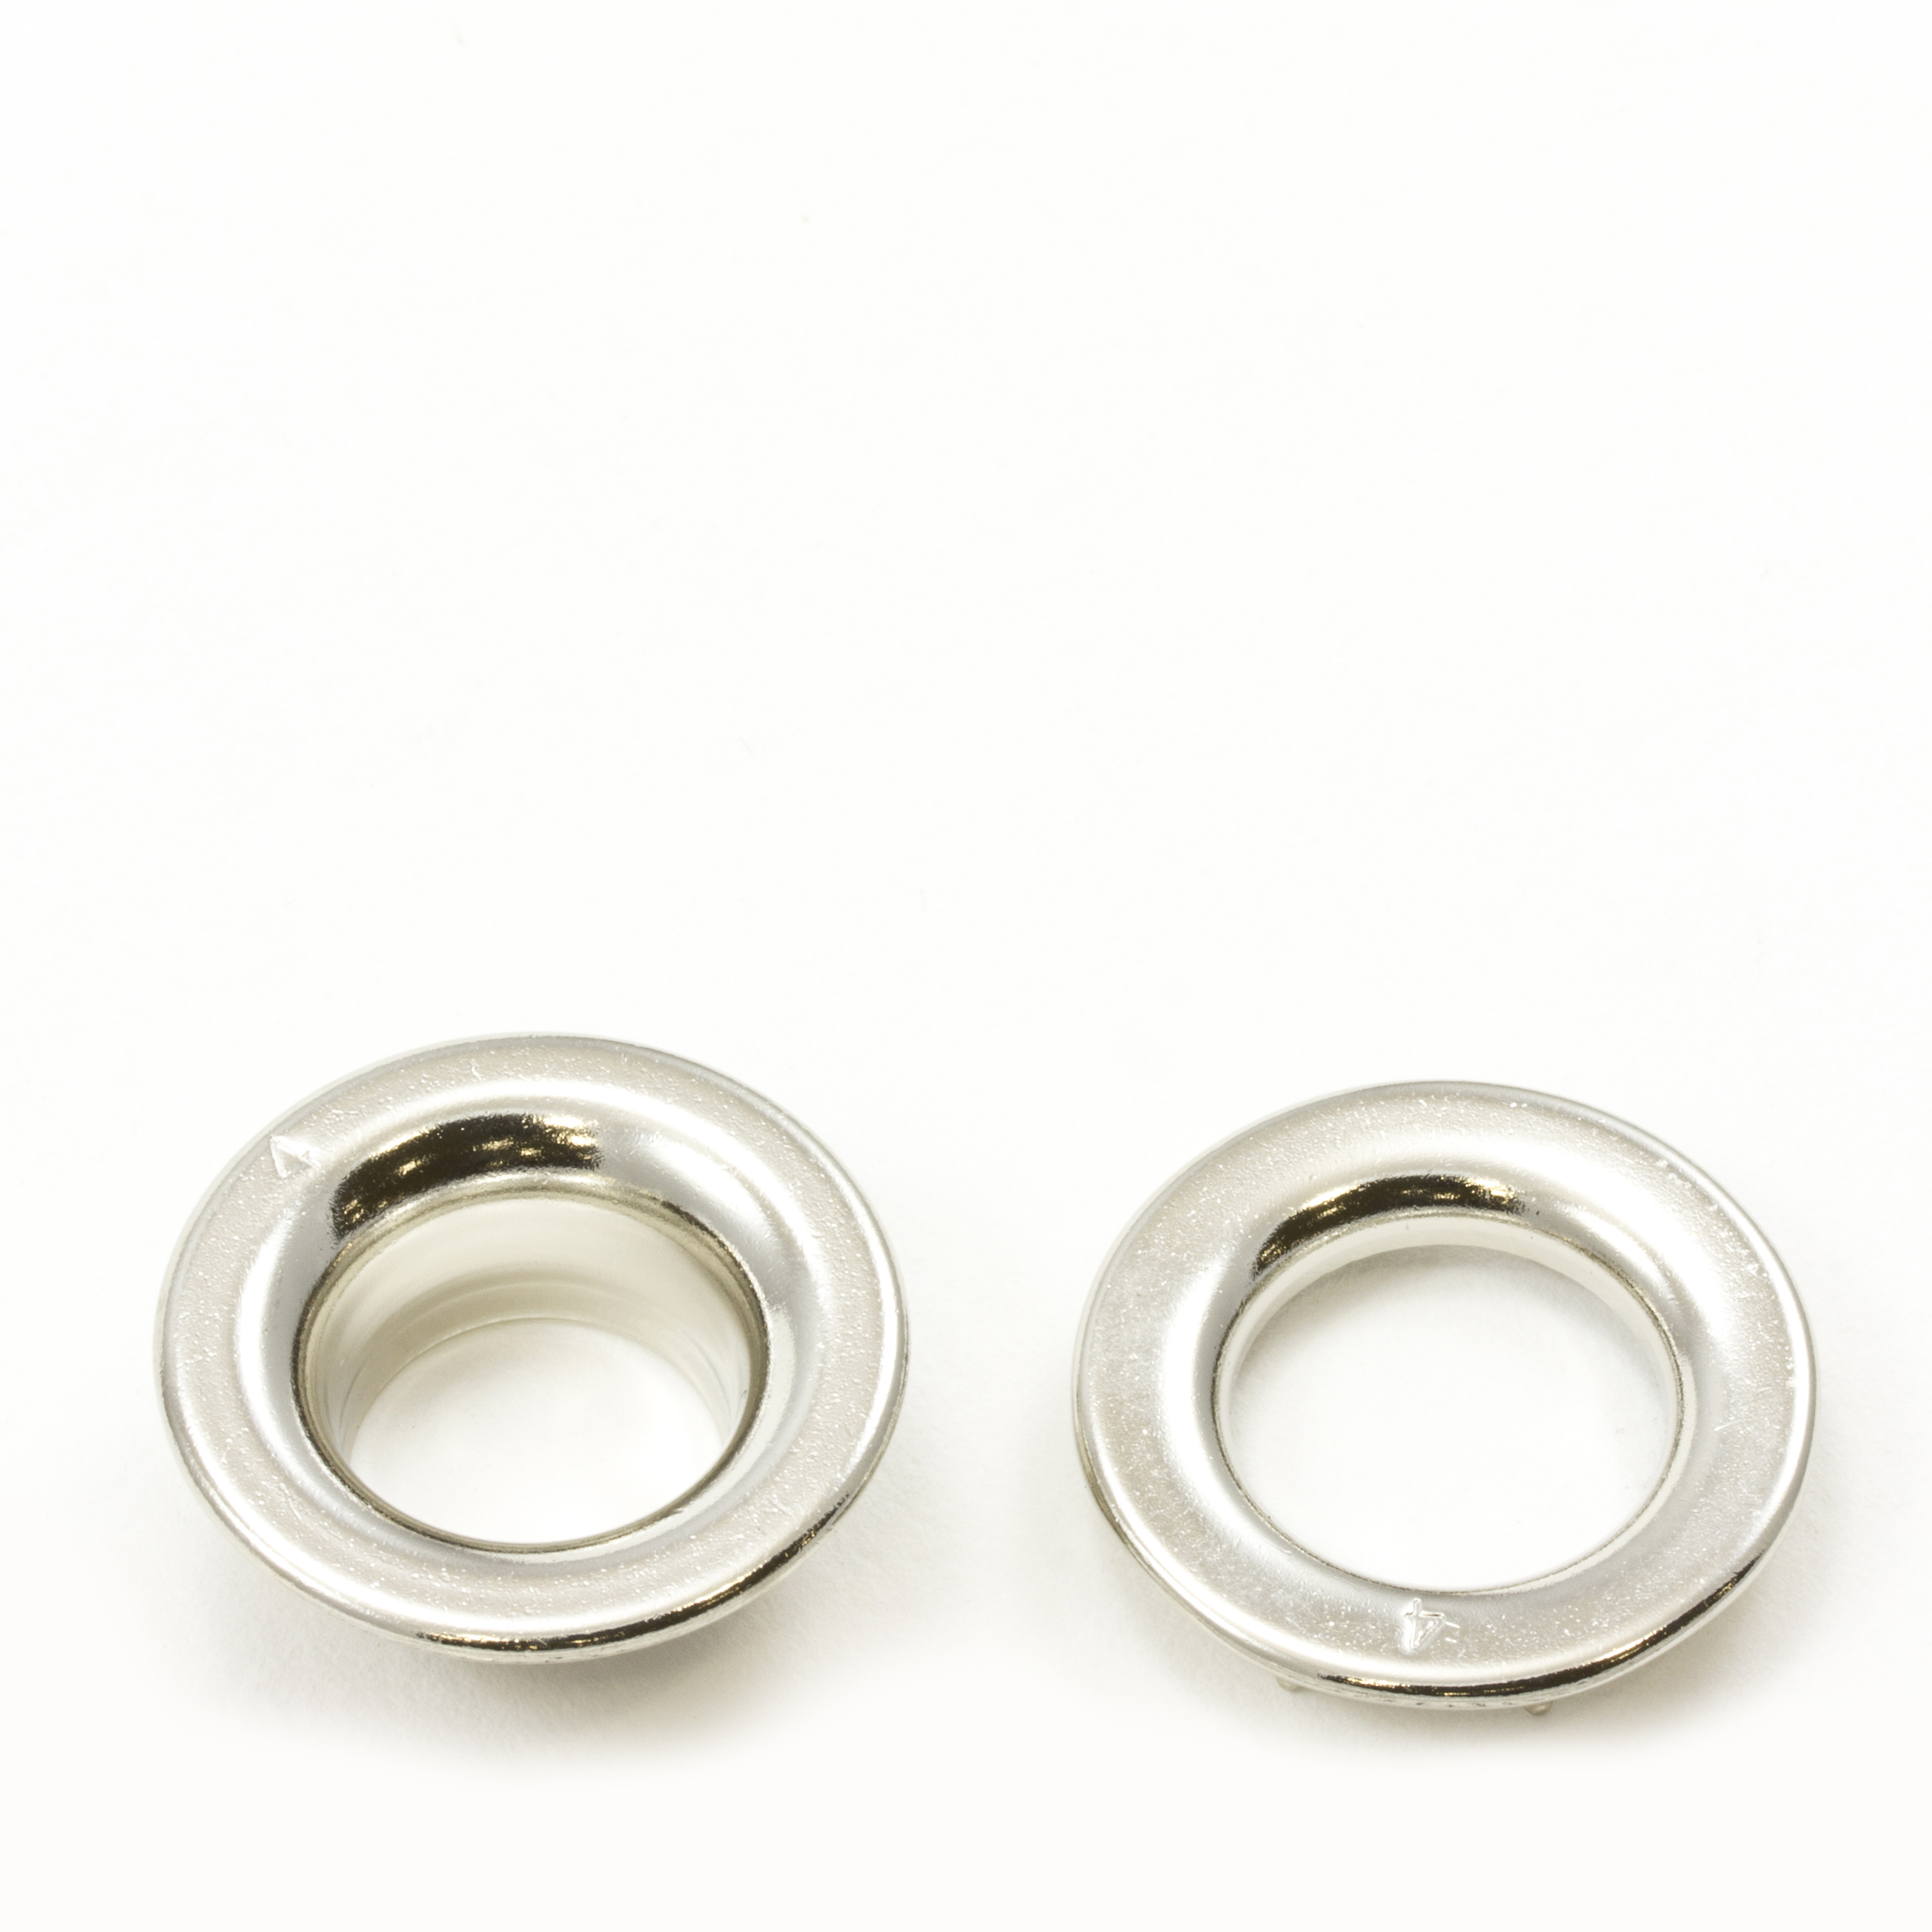 Thumbnail Rolled Rim Grommet with Spur Washer #4 Brass Nickel Plated 9/16 1